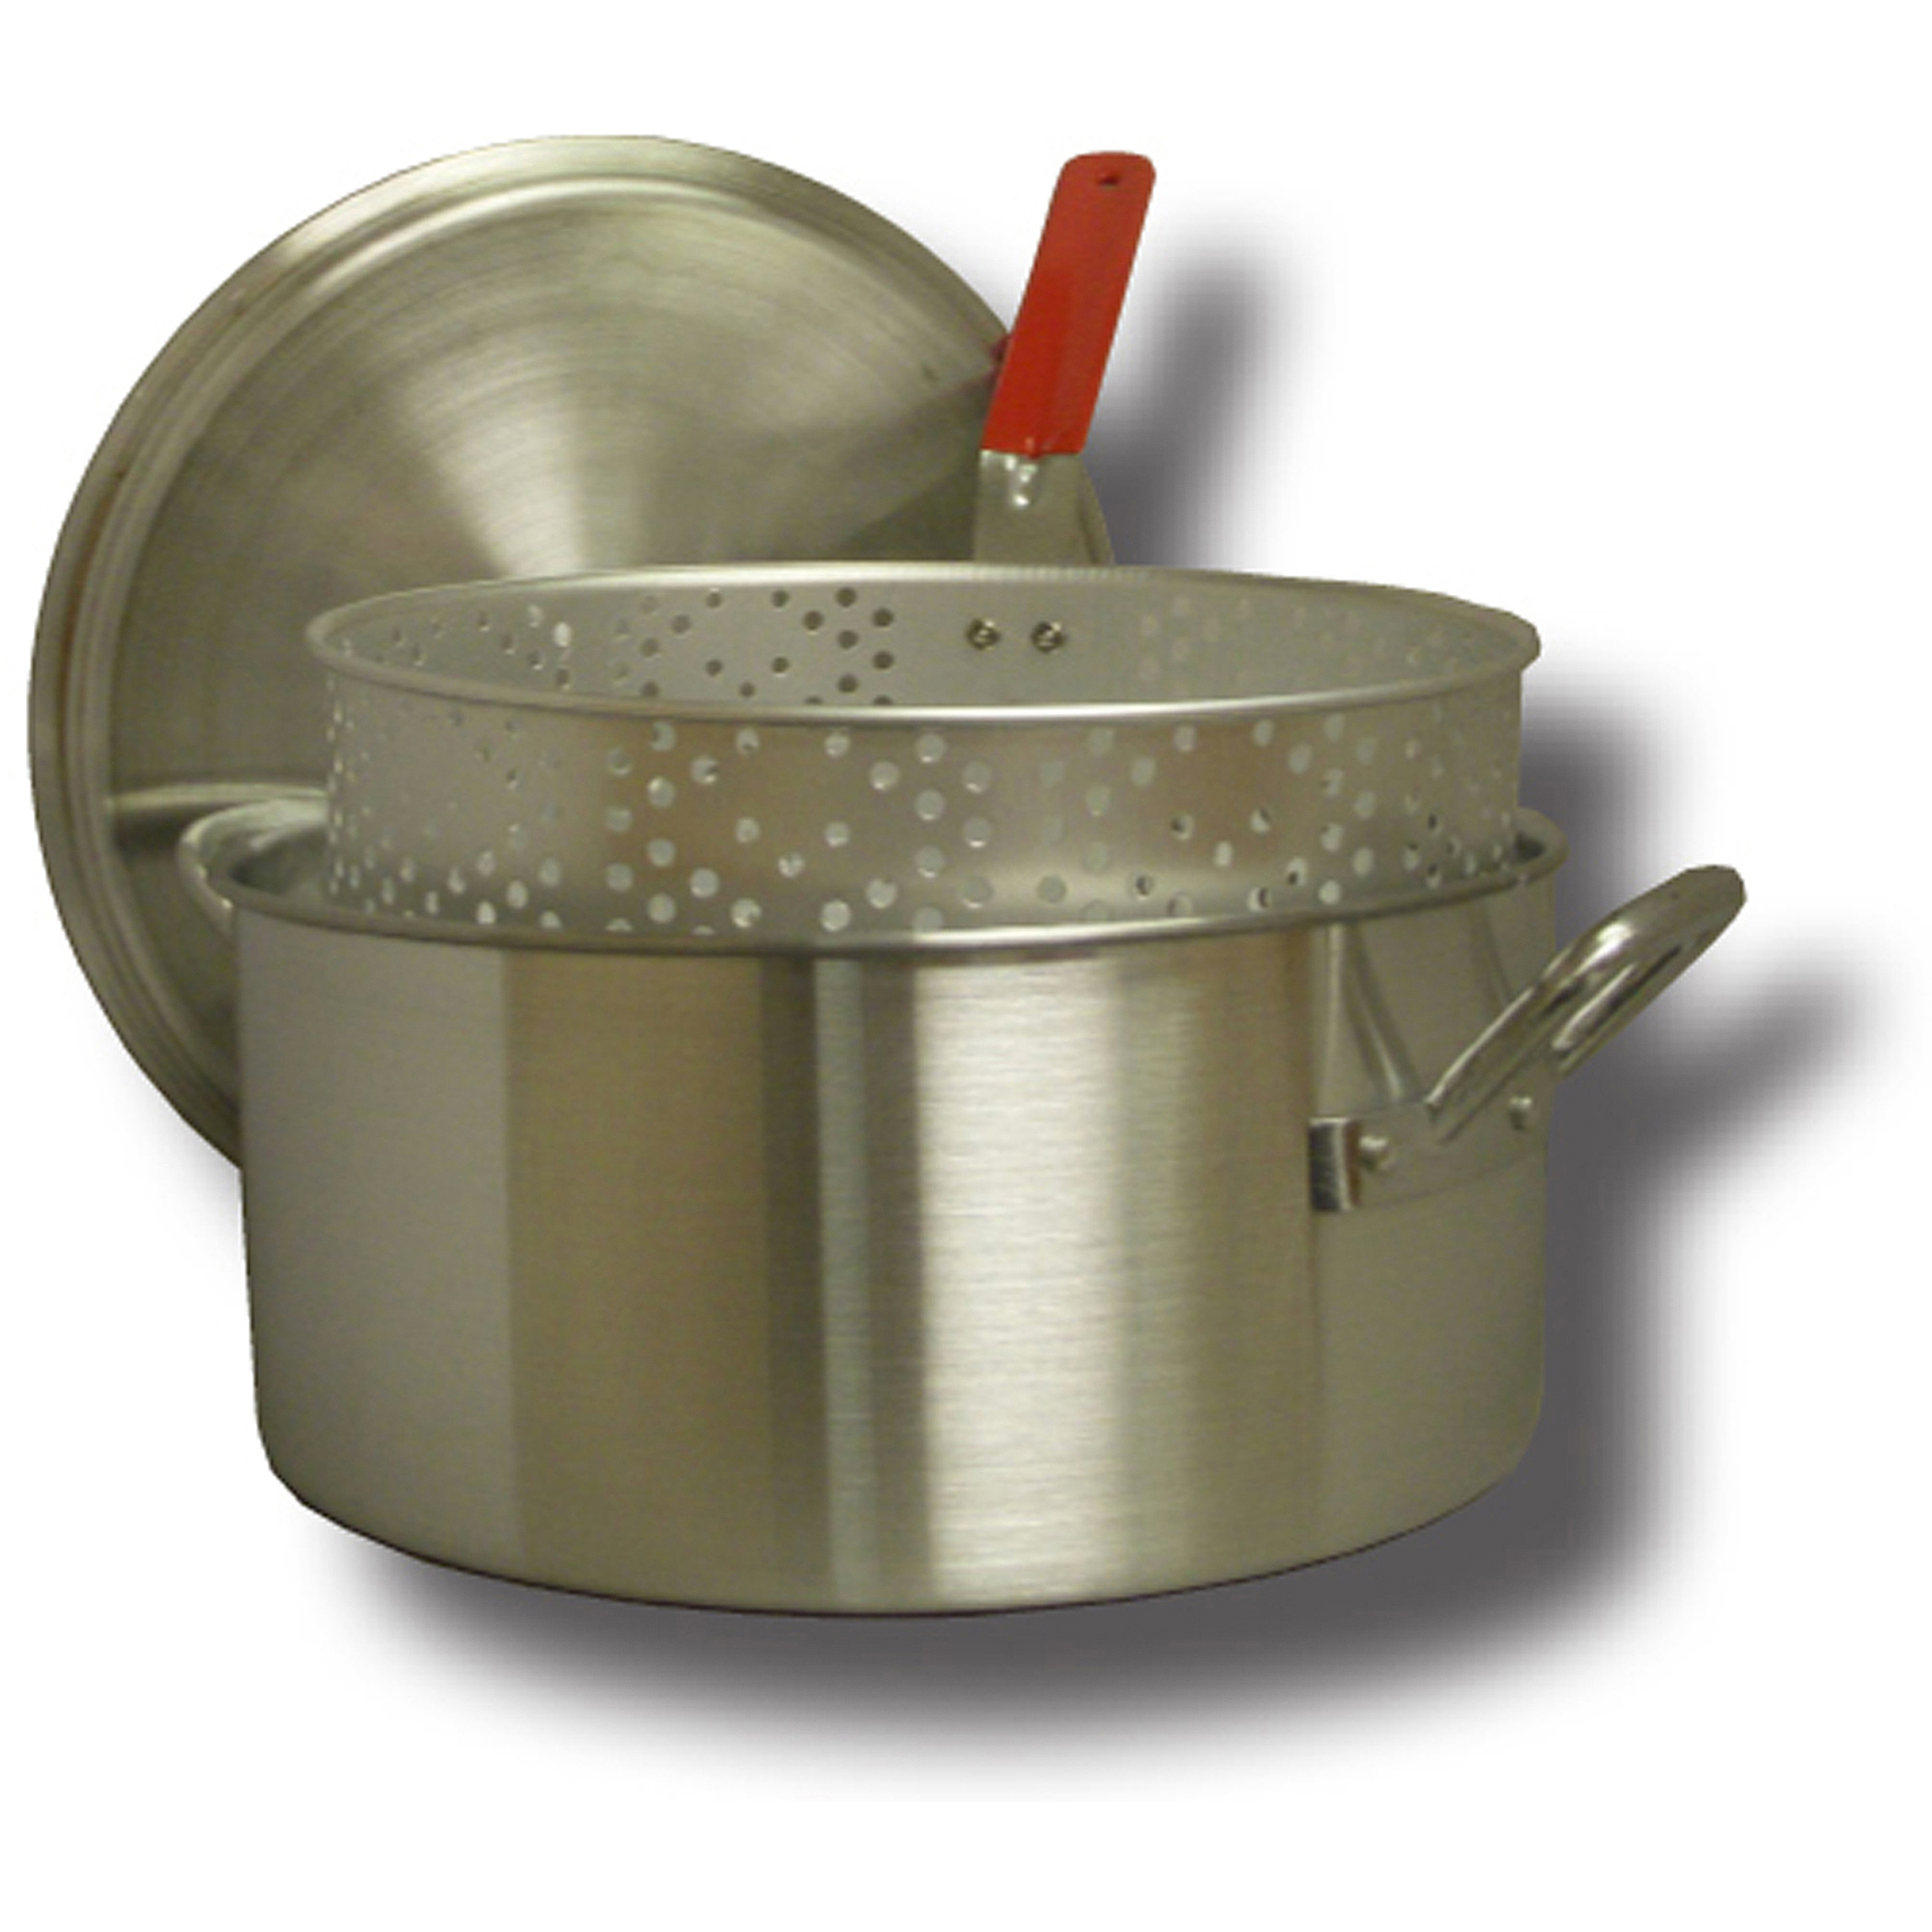 King Kooker 14 qt Aluminum Fry Pan with Basket and Lid